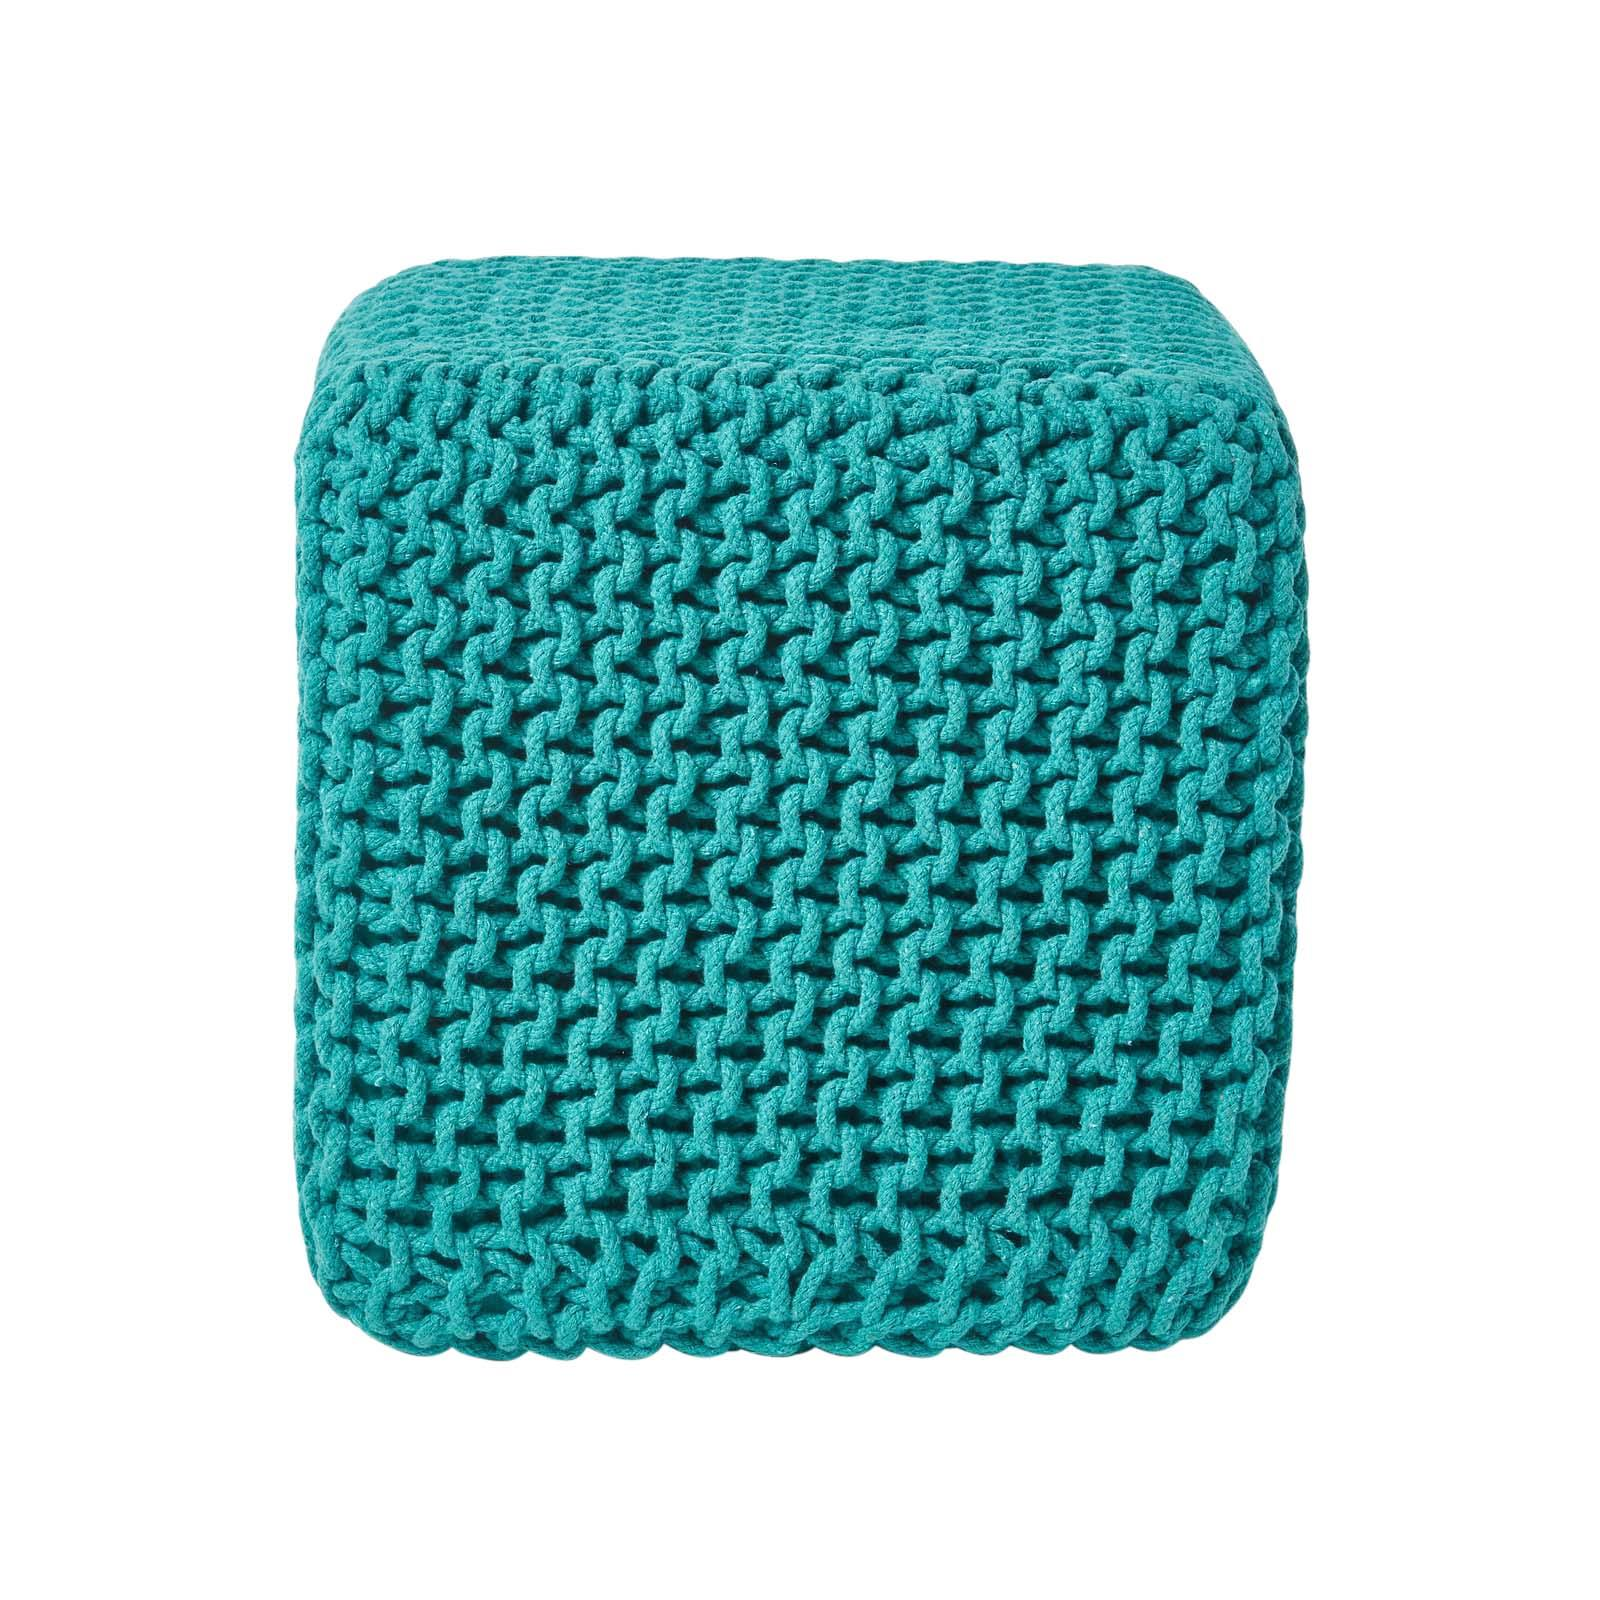 Hand-Knitted-100-Cotton-Pouffes-Round-Sphere-Or-Cube-Square-Chunky-Footstools thumbnail 193